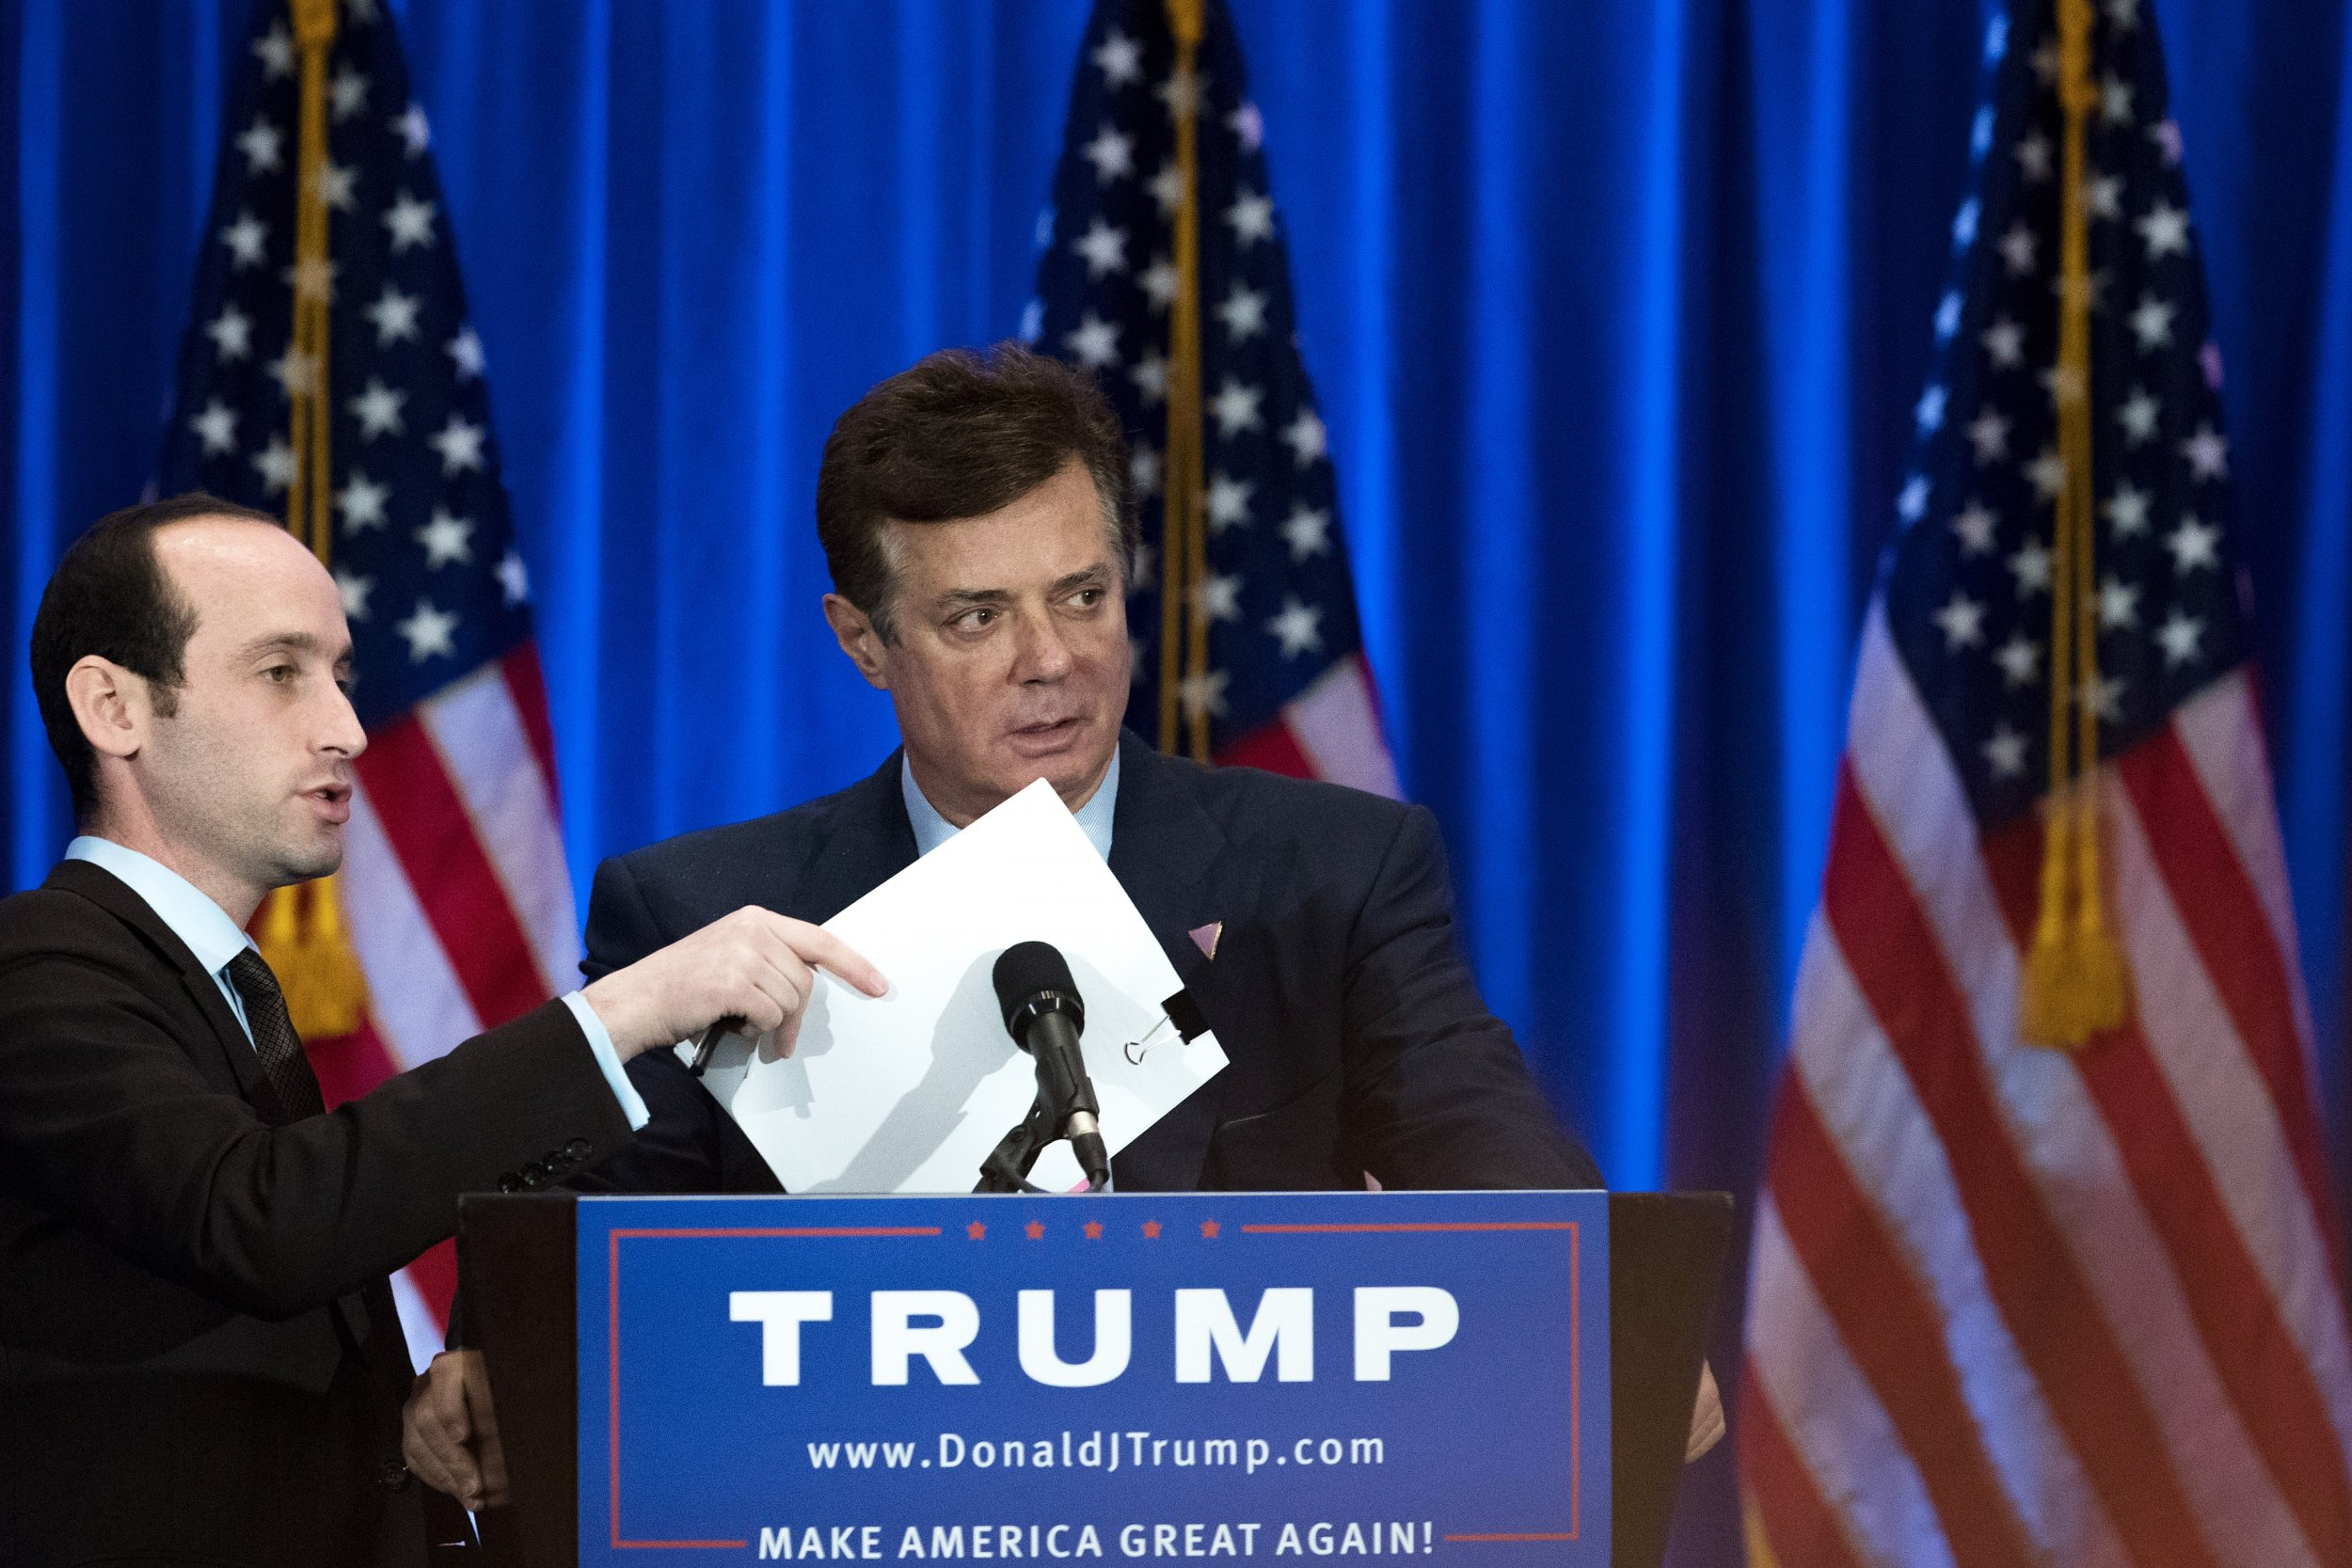 Manafort at Trump campaign speech